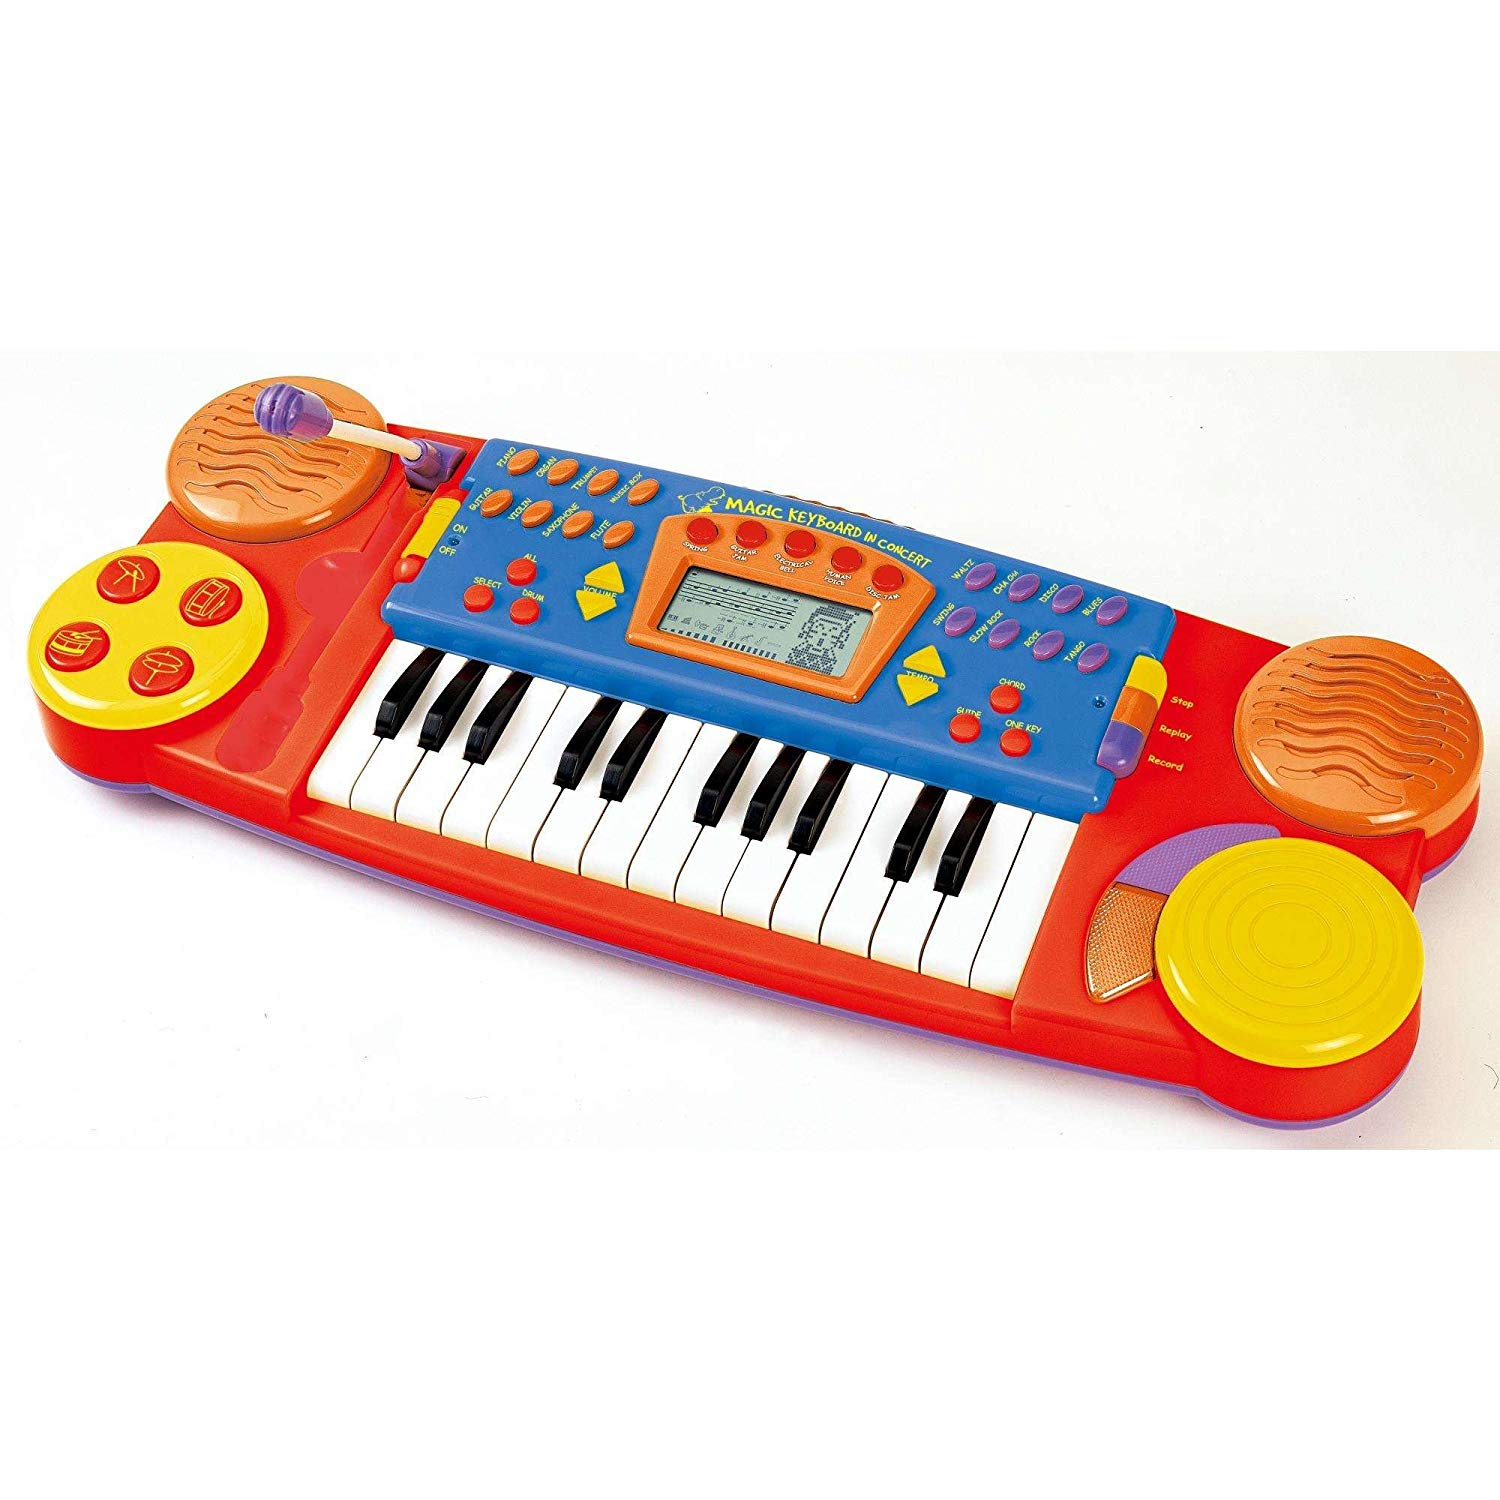 Sing N Play Learning Keyboard, 25 keys electronic keyboard with microphone and stereo sound effects By Little Virtuoso